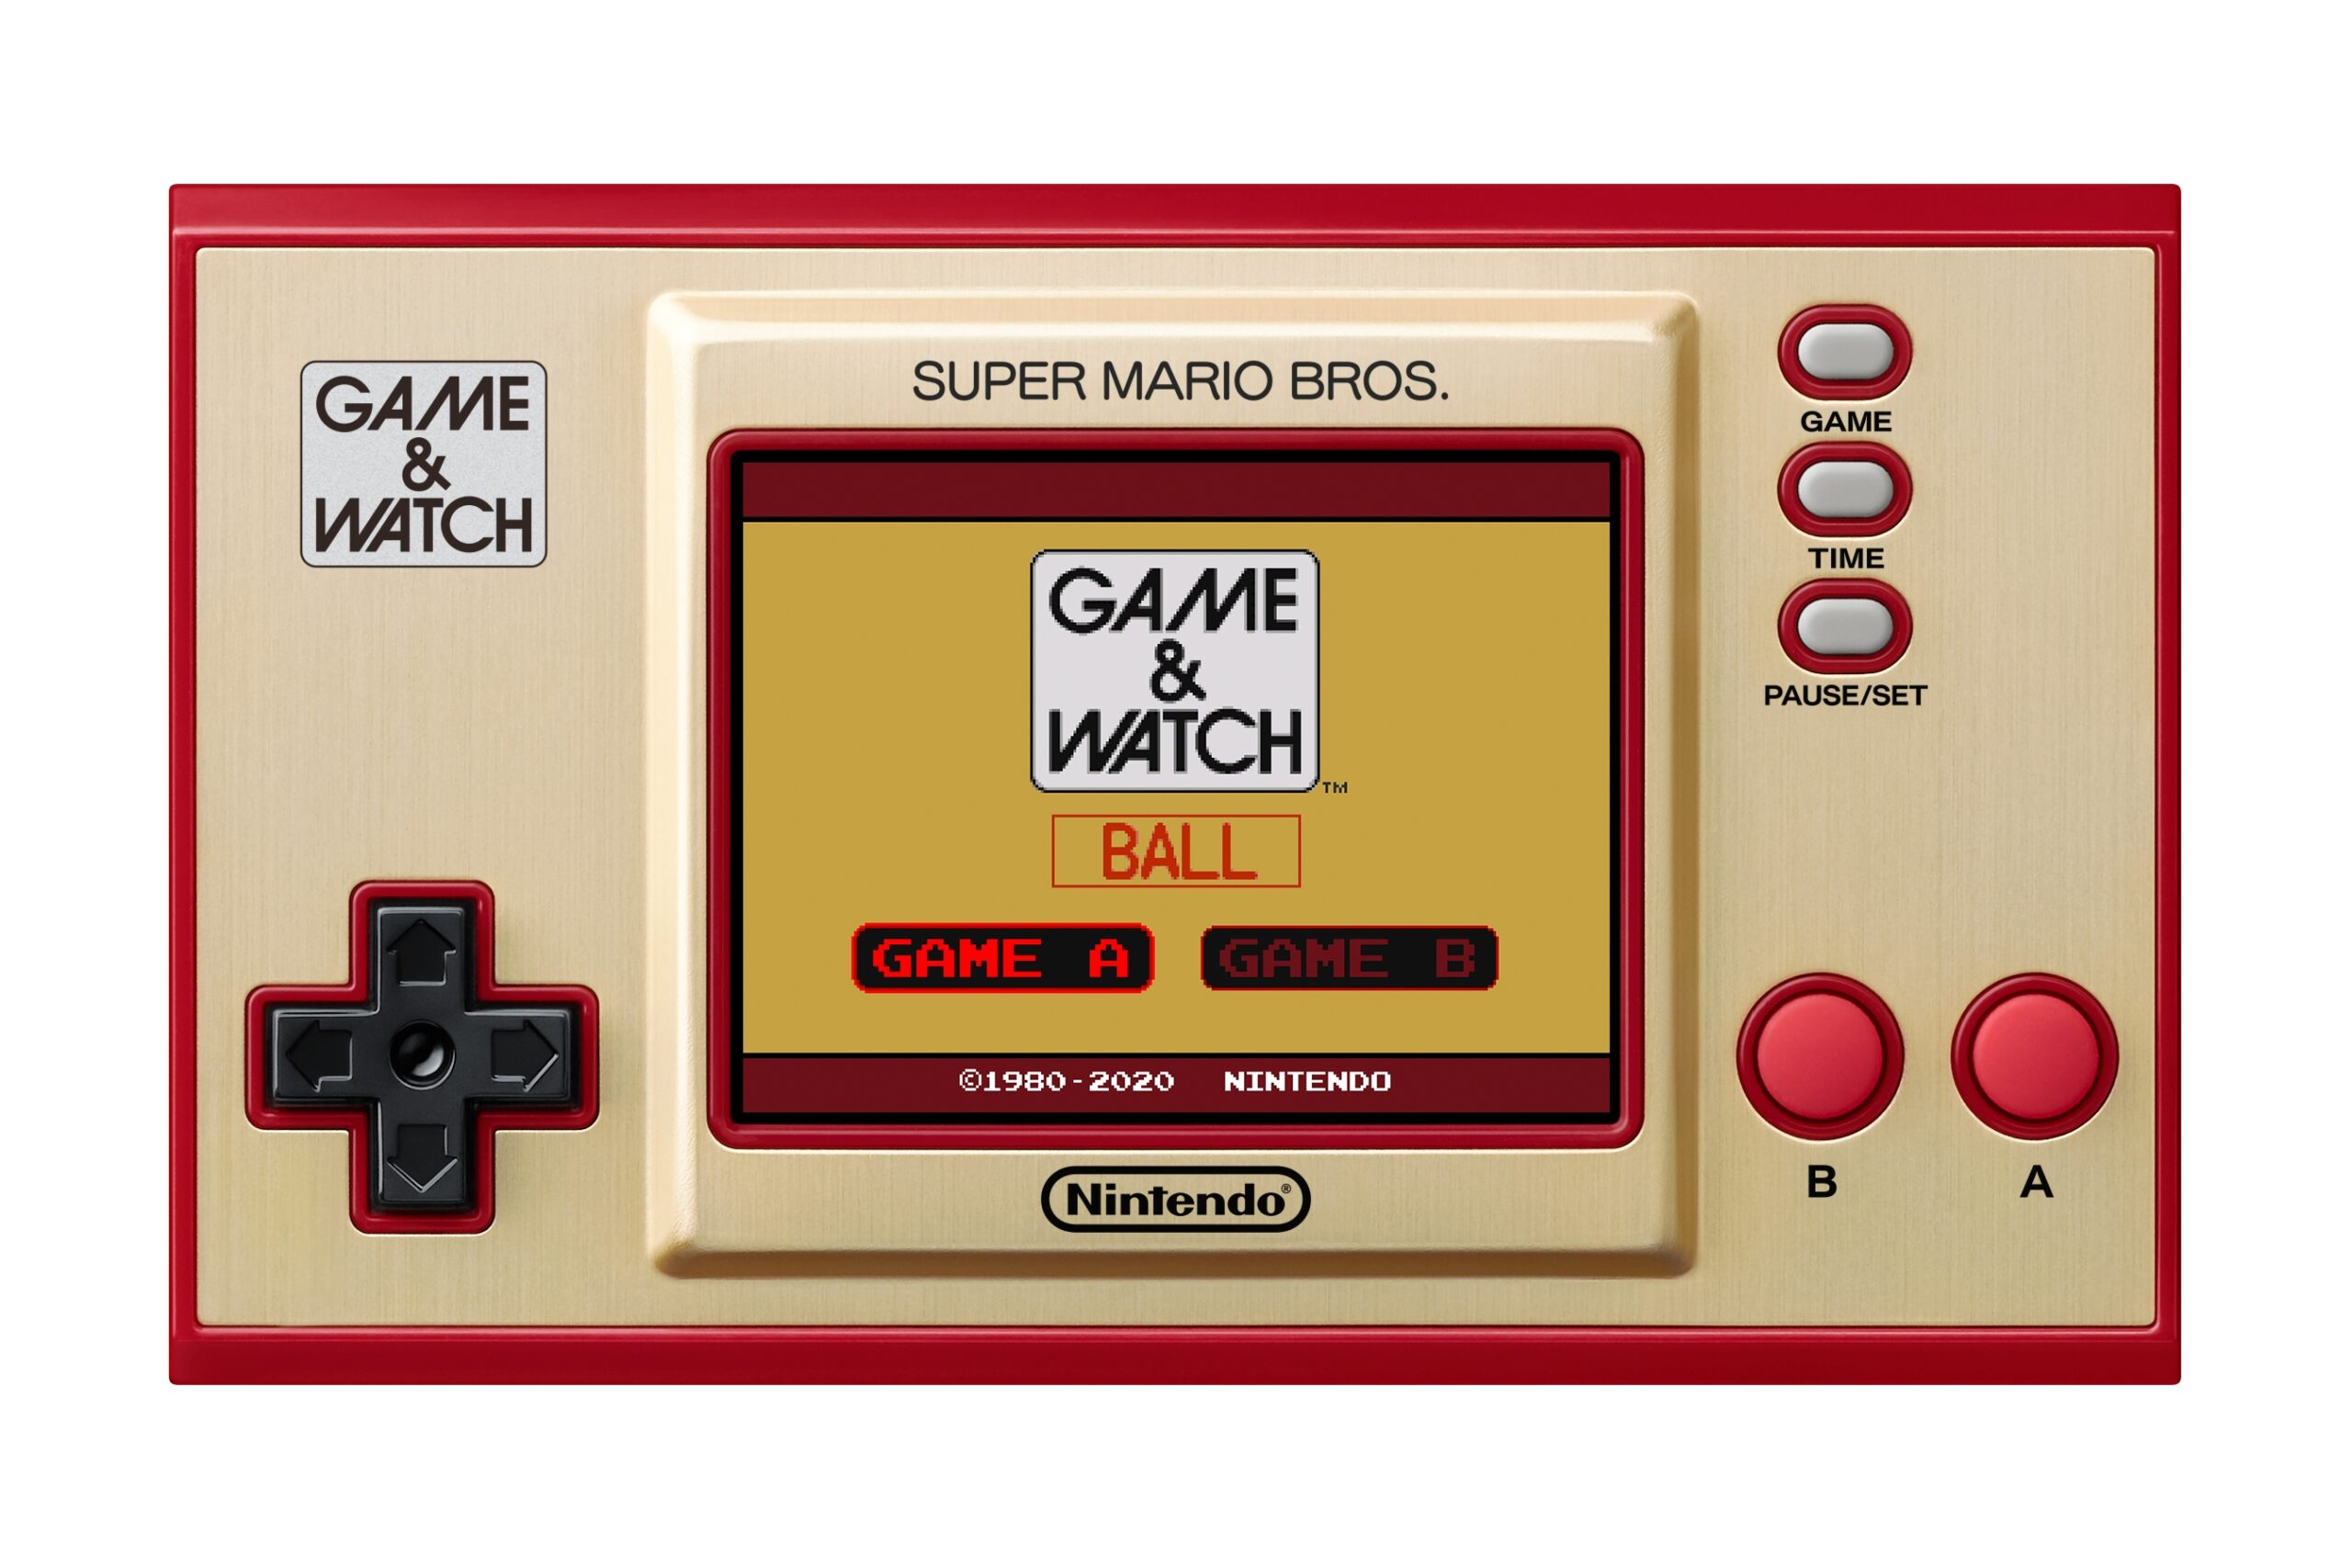 Game-and-Watch-Super-Mario-Bros_2020_09-03-20_004